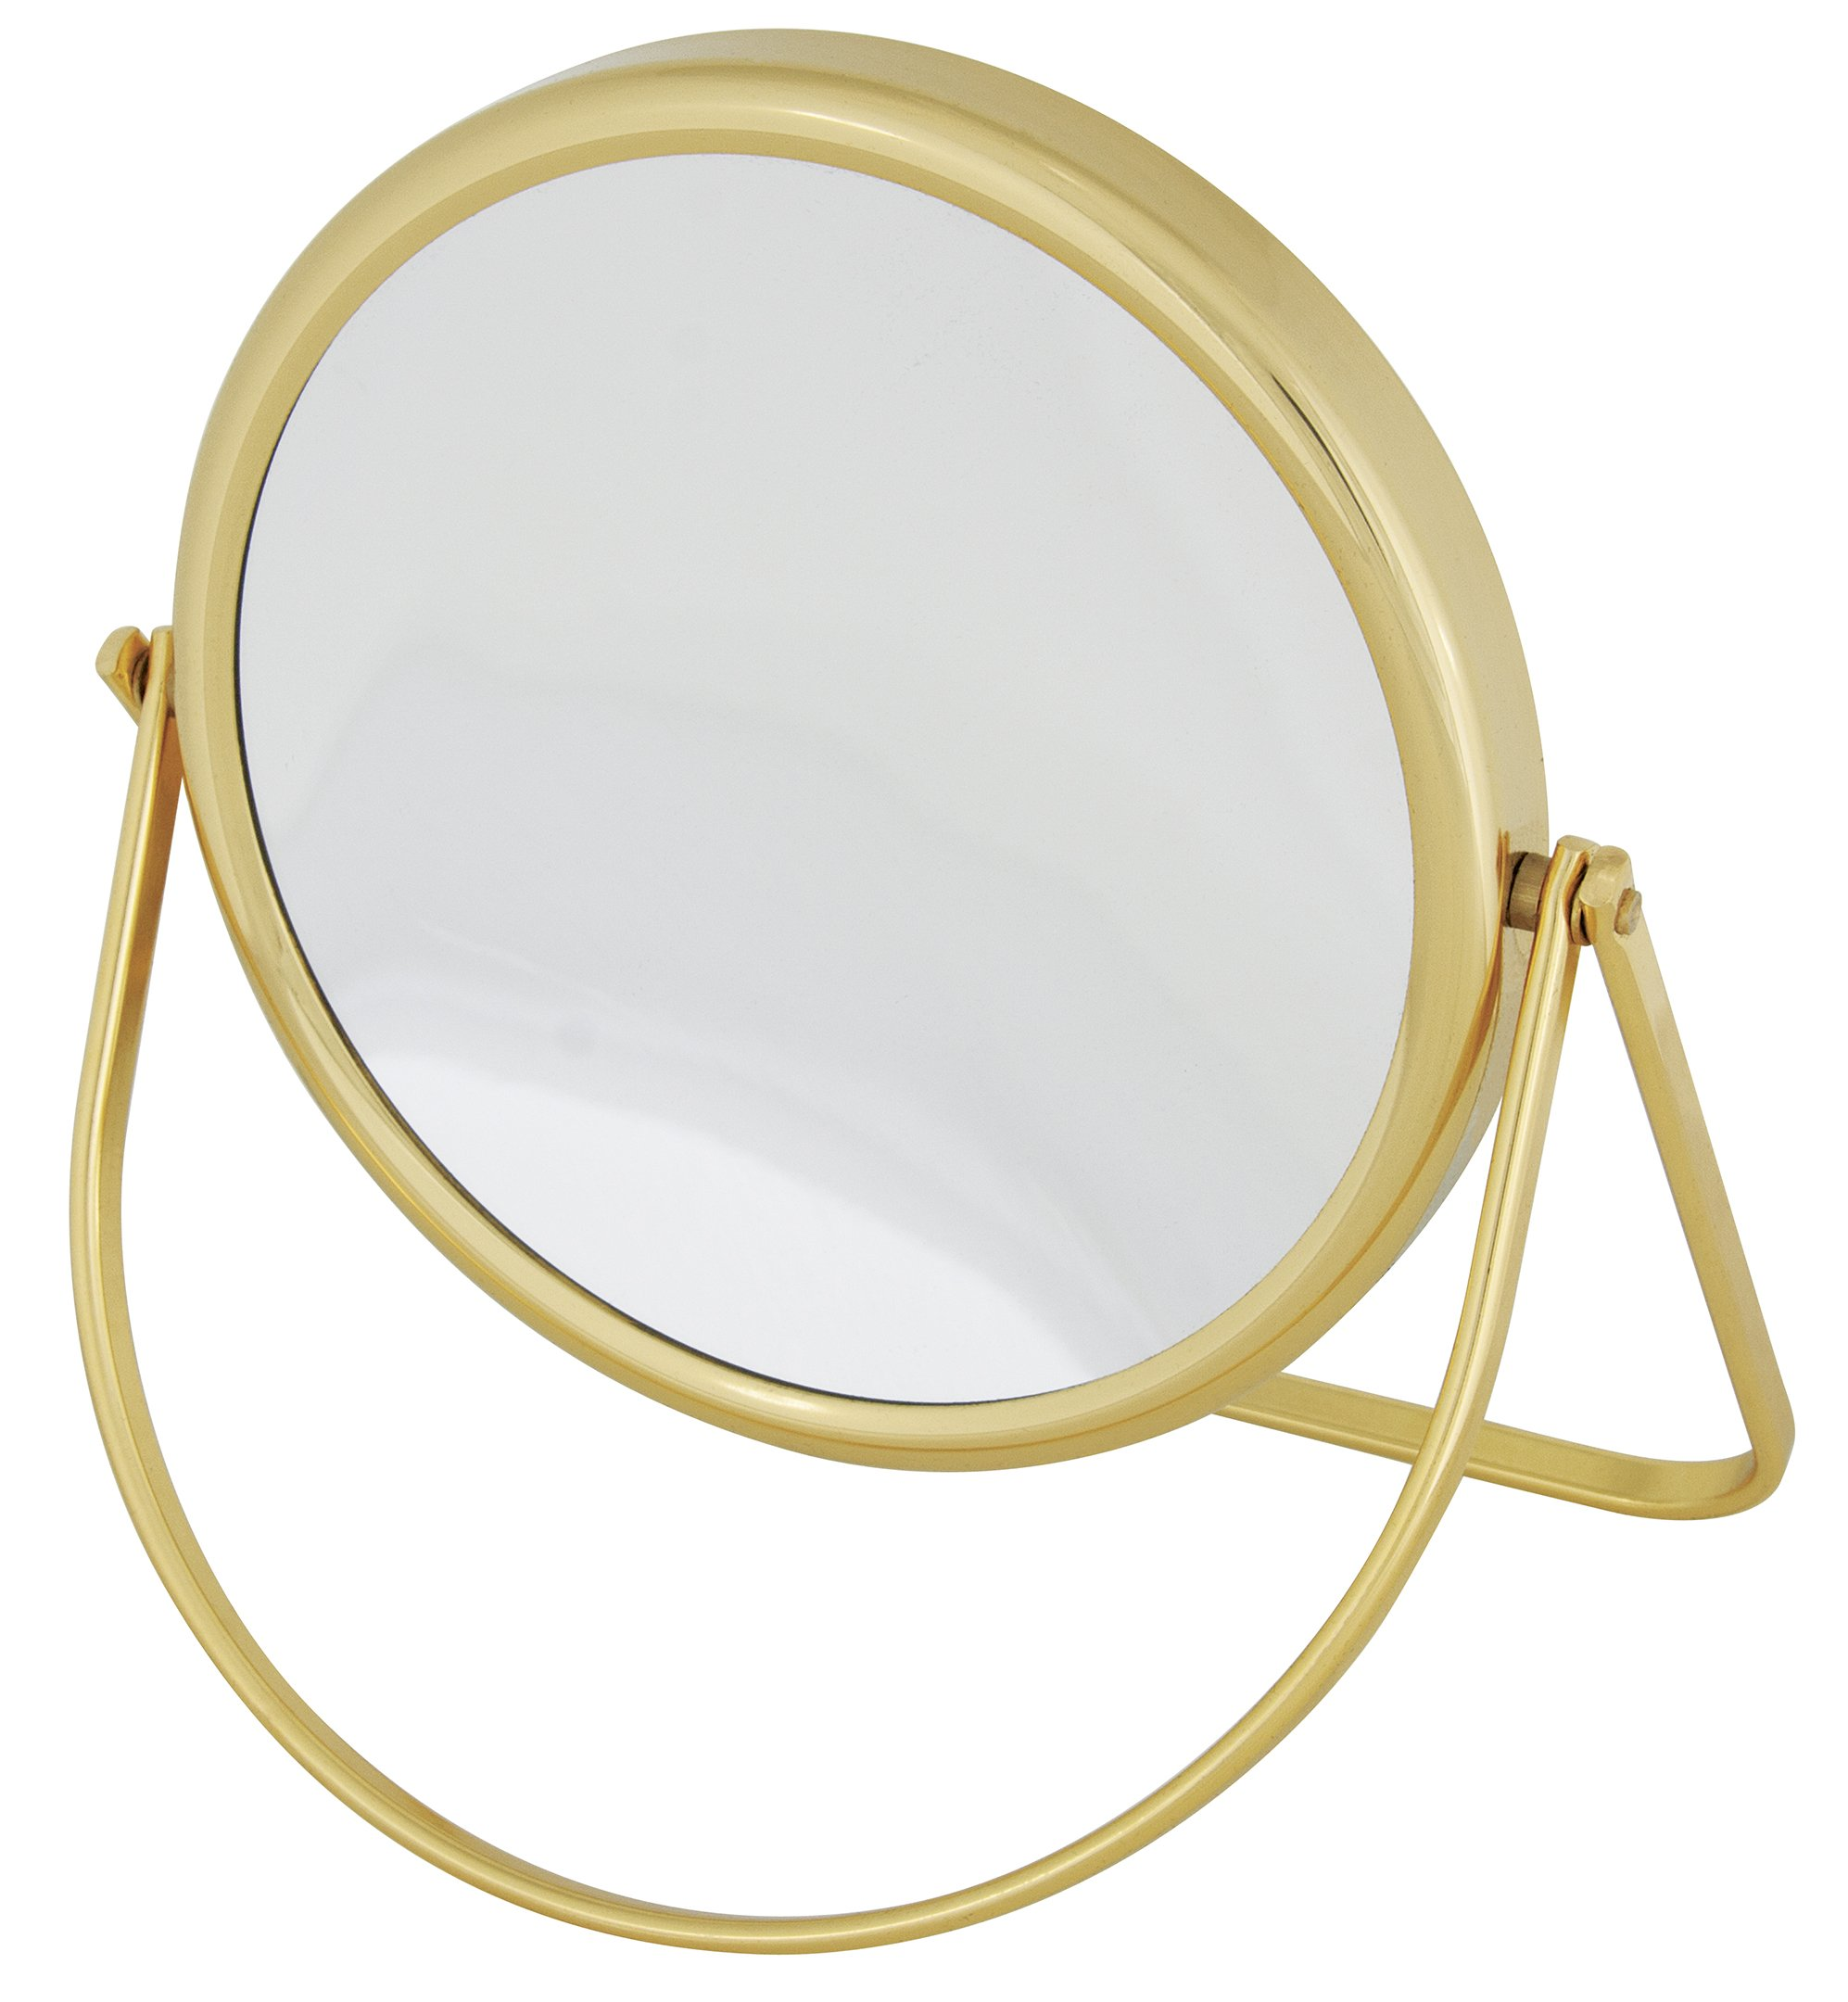 Frasco Mirrors Folding Stand Double Sided Mirror, Brass, 1 lb.